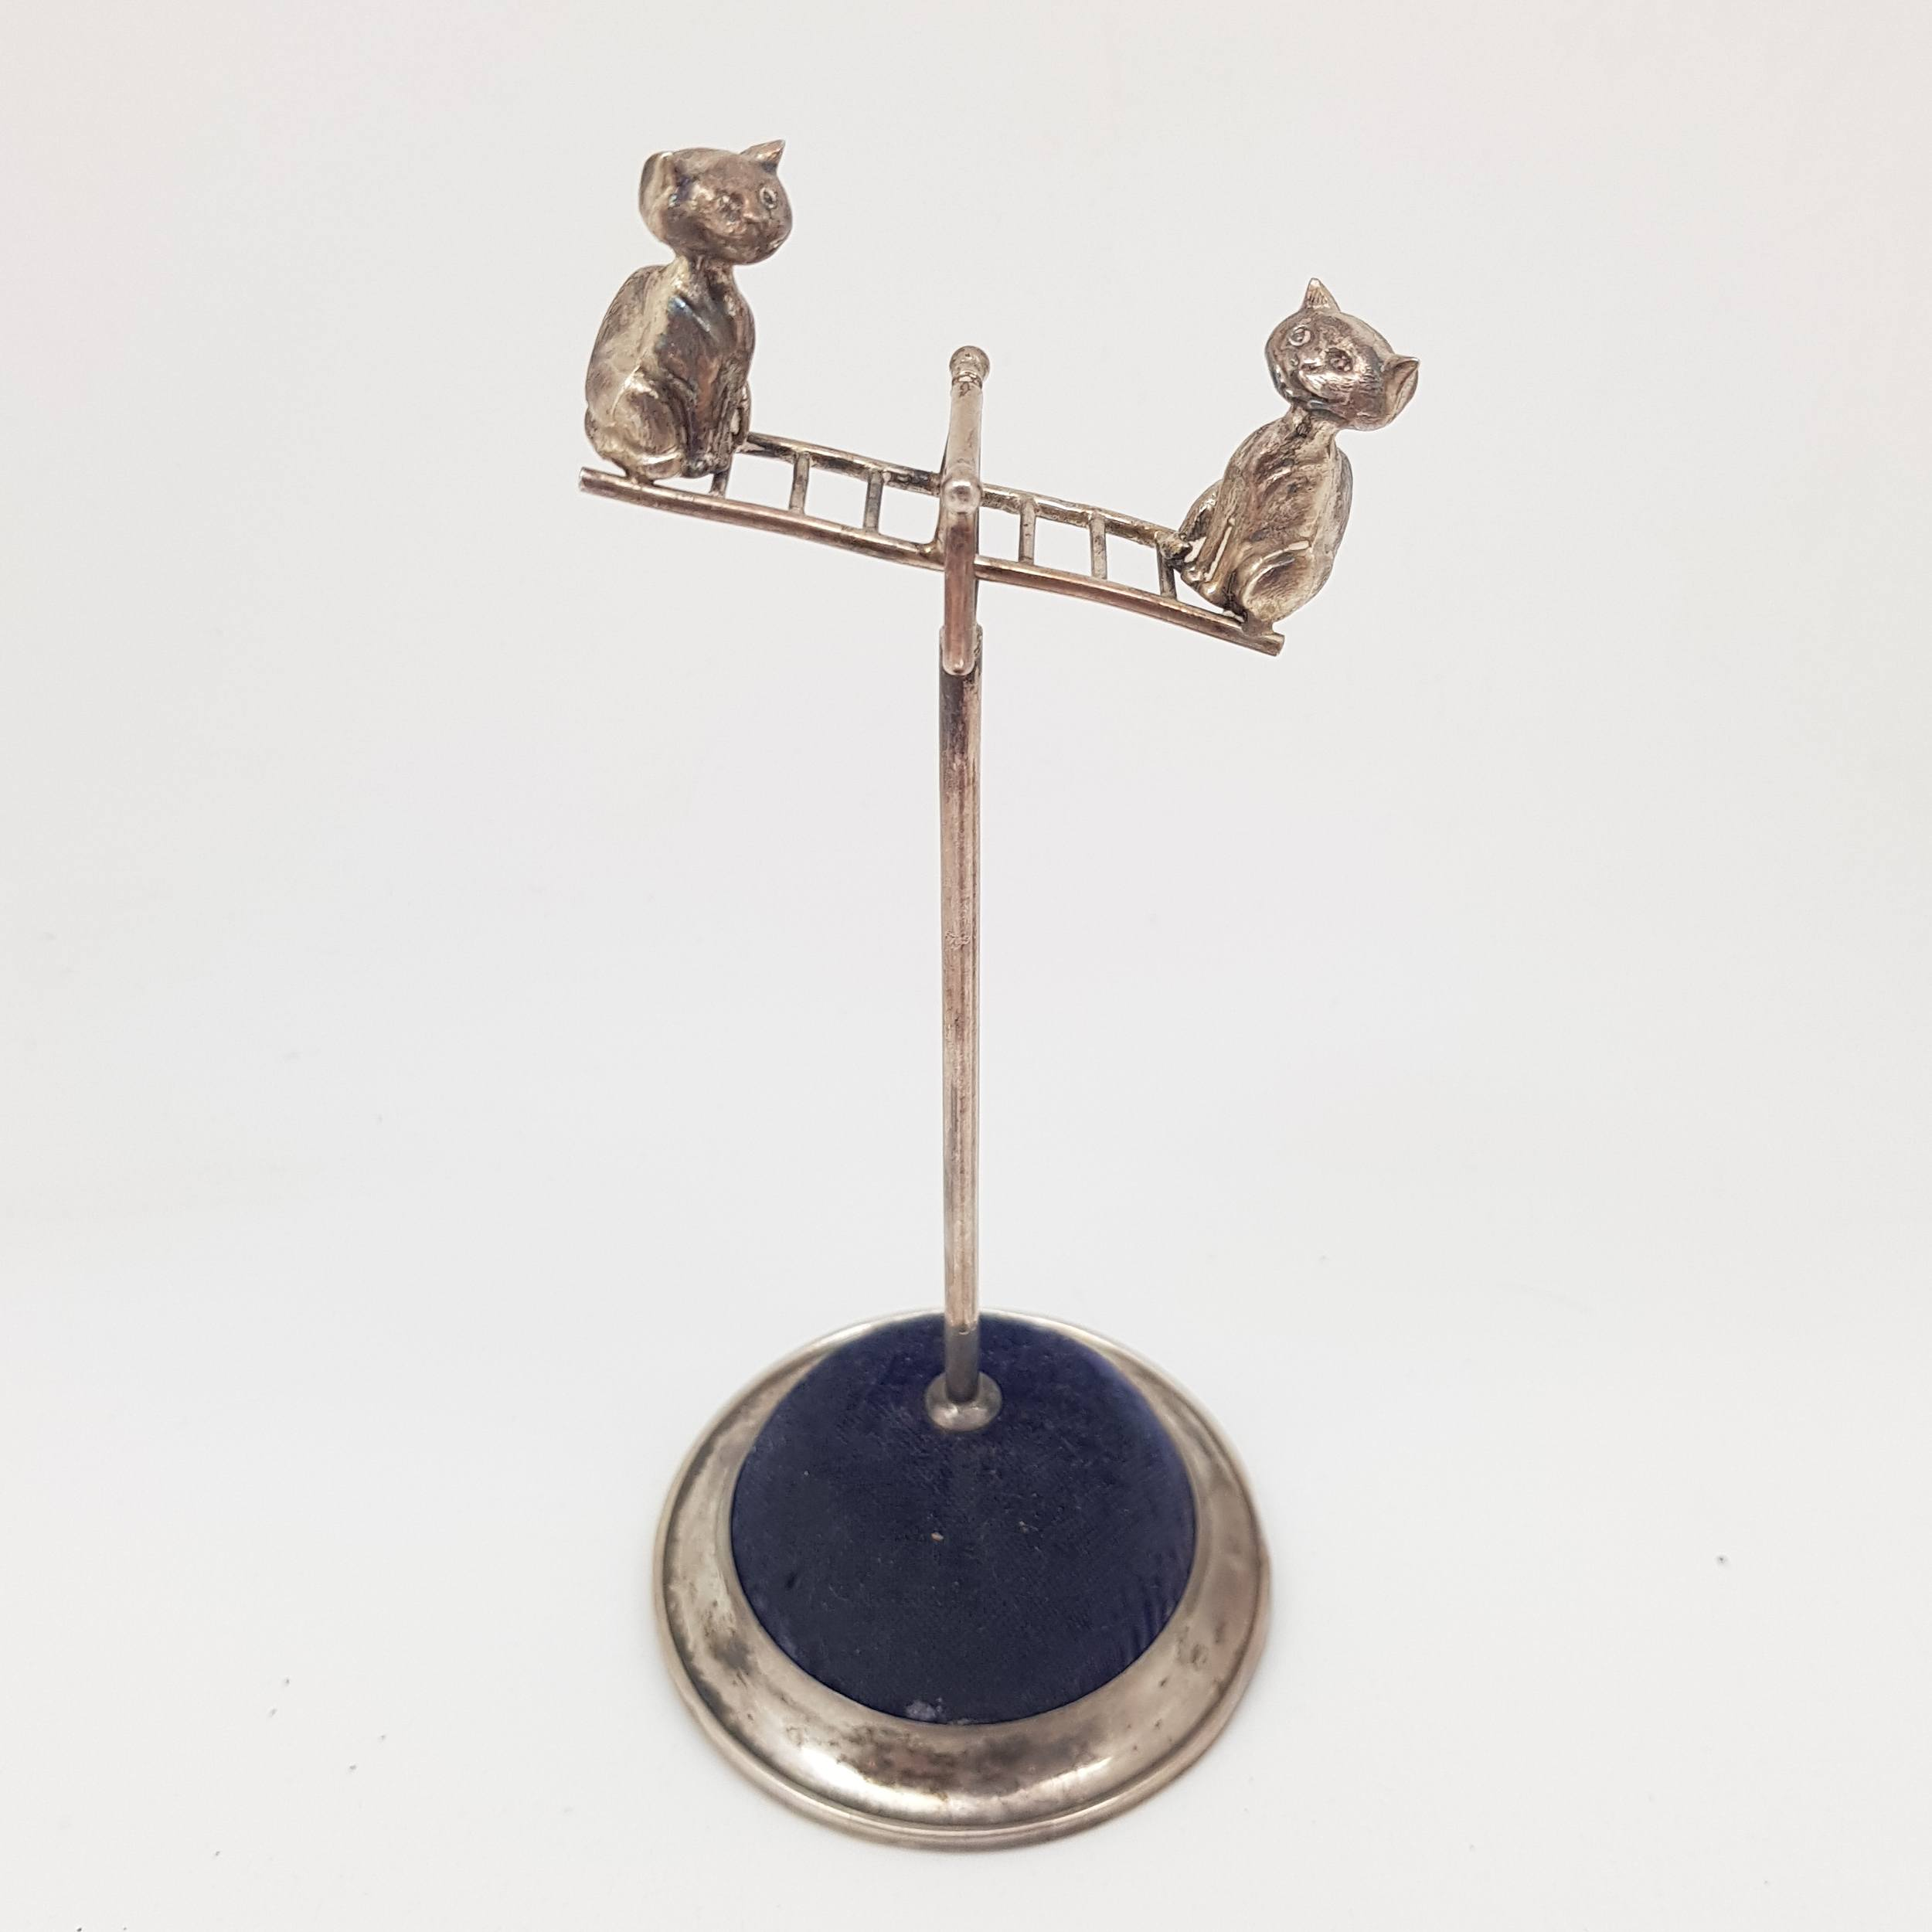 'Edwardian Sterling Silver Hat Pin Stand - Cats on a Seesaw (moving parts), William Vale and Sons, Birmingham 1908'